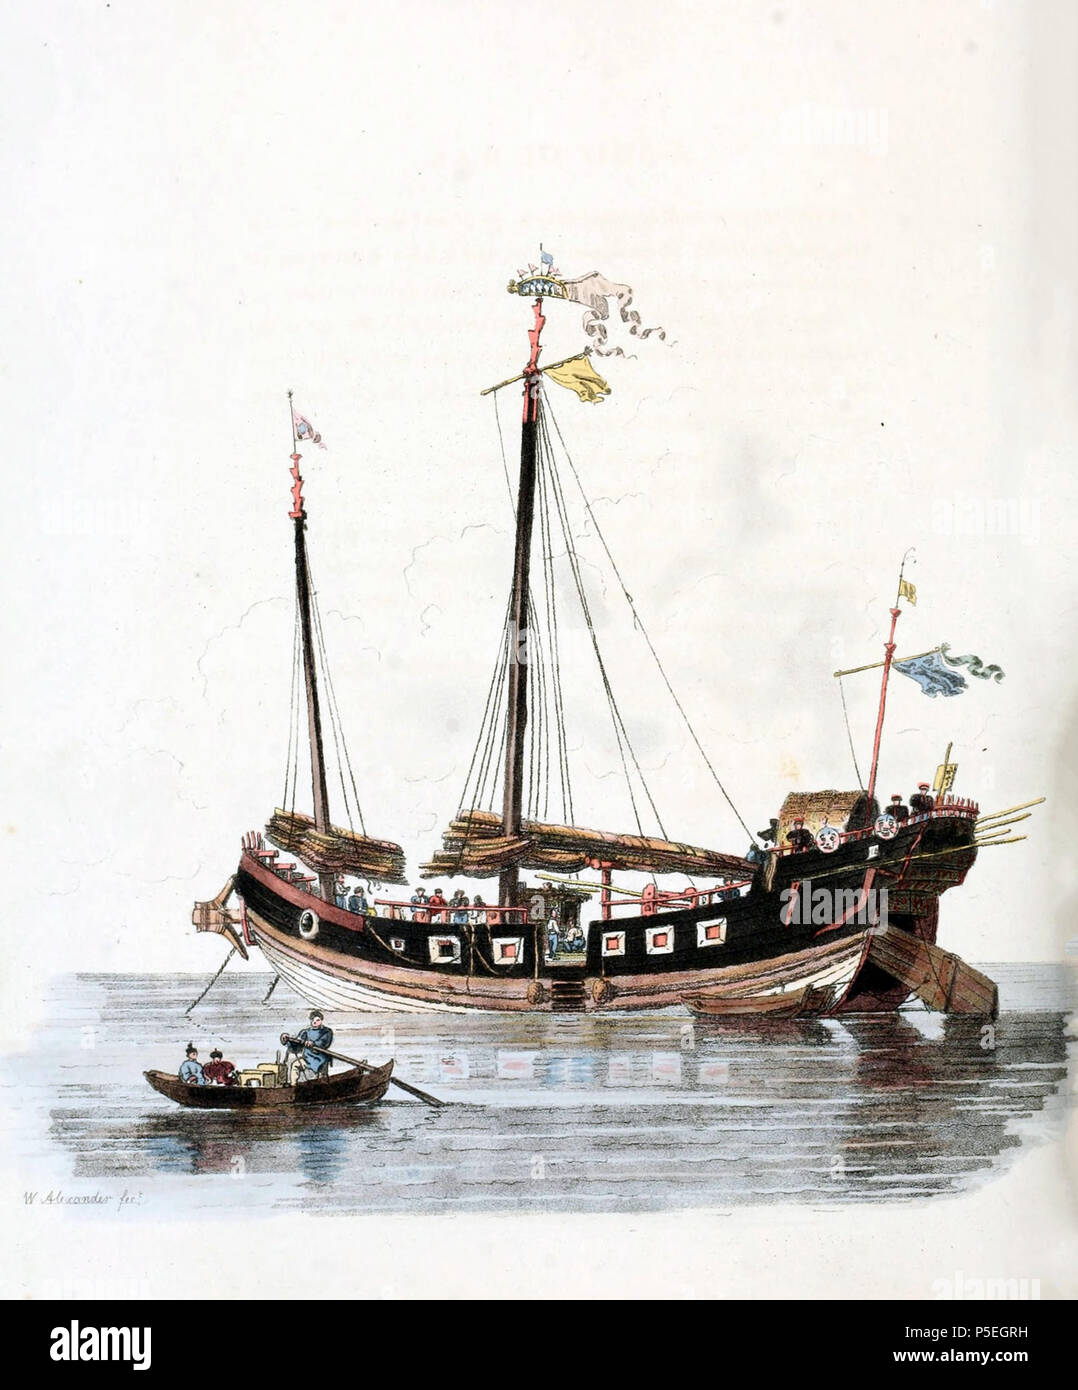 N/A. English: Drawing by William Alexander, draughtsman of the Macartney Embassy to China in 1793. A ship of war Pin-gee-na laying at anchor near Ning-po. The rudder is lifted to preserve it while at anchor. Alexander noted that the artillery ports were false, as few ships of the Chinese navy were equipped at that time with guns, and were used primarily for transporting troops. Image taken from The Costume of China, illustrated in forty-eight coloured engravings, published in London in 1805. circa 1800.   William Alexander (1767–1816)   Alternative names Mr. Alexander; W. Alexander  Descrip - Stock Image